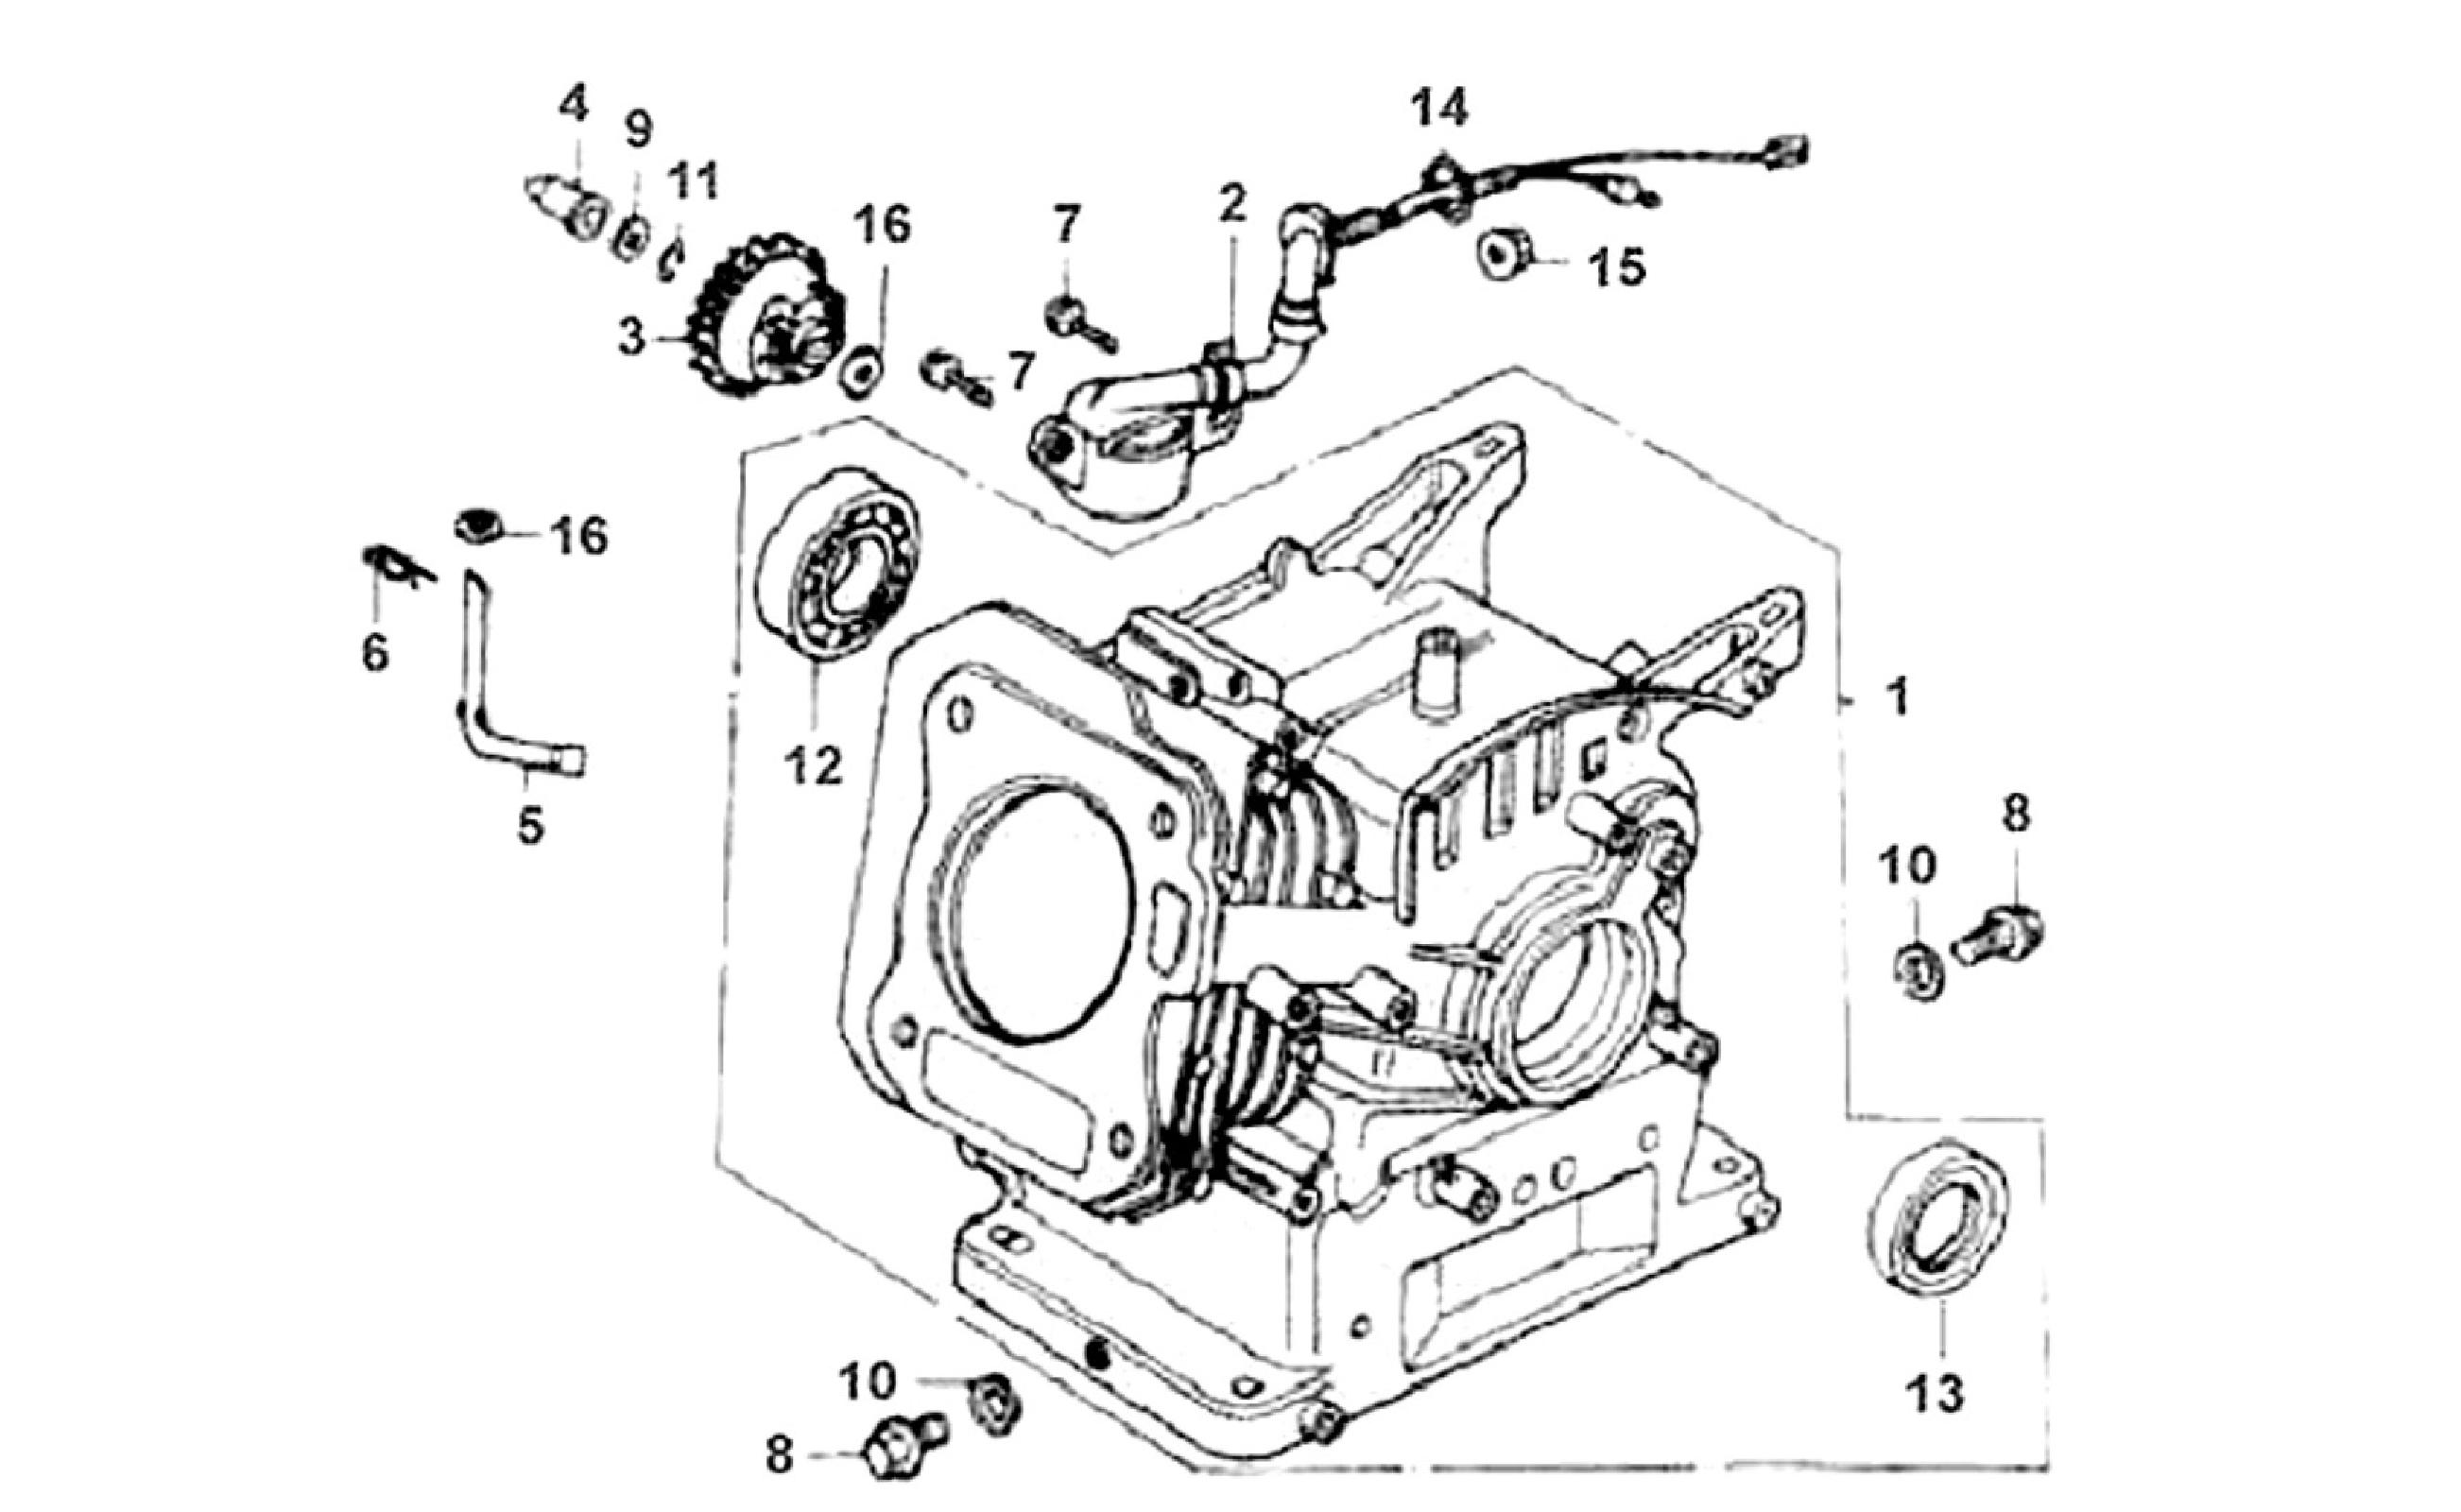 E335be Manual For Gx160 Honda Engine Parts 1260676 Academia Diagram Of Generator Ex800 A Jpn Vin G100 Used